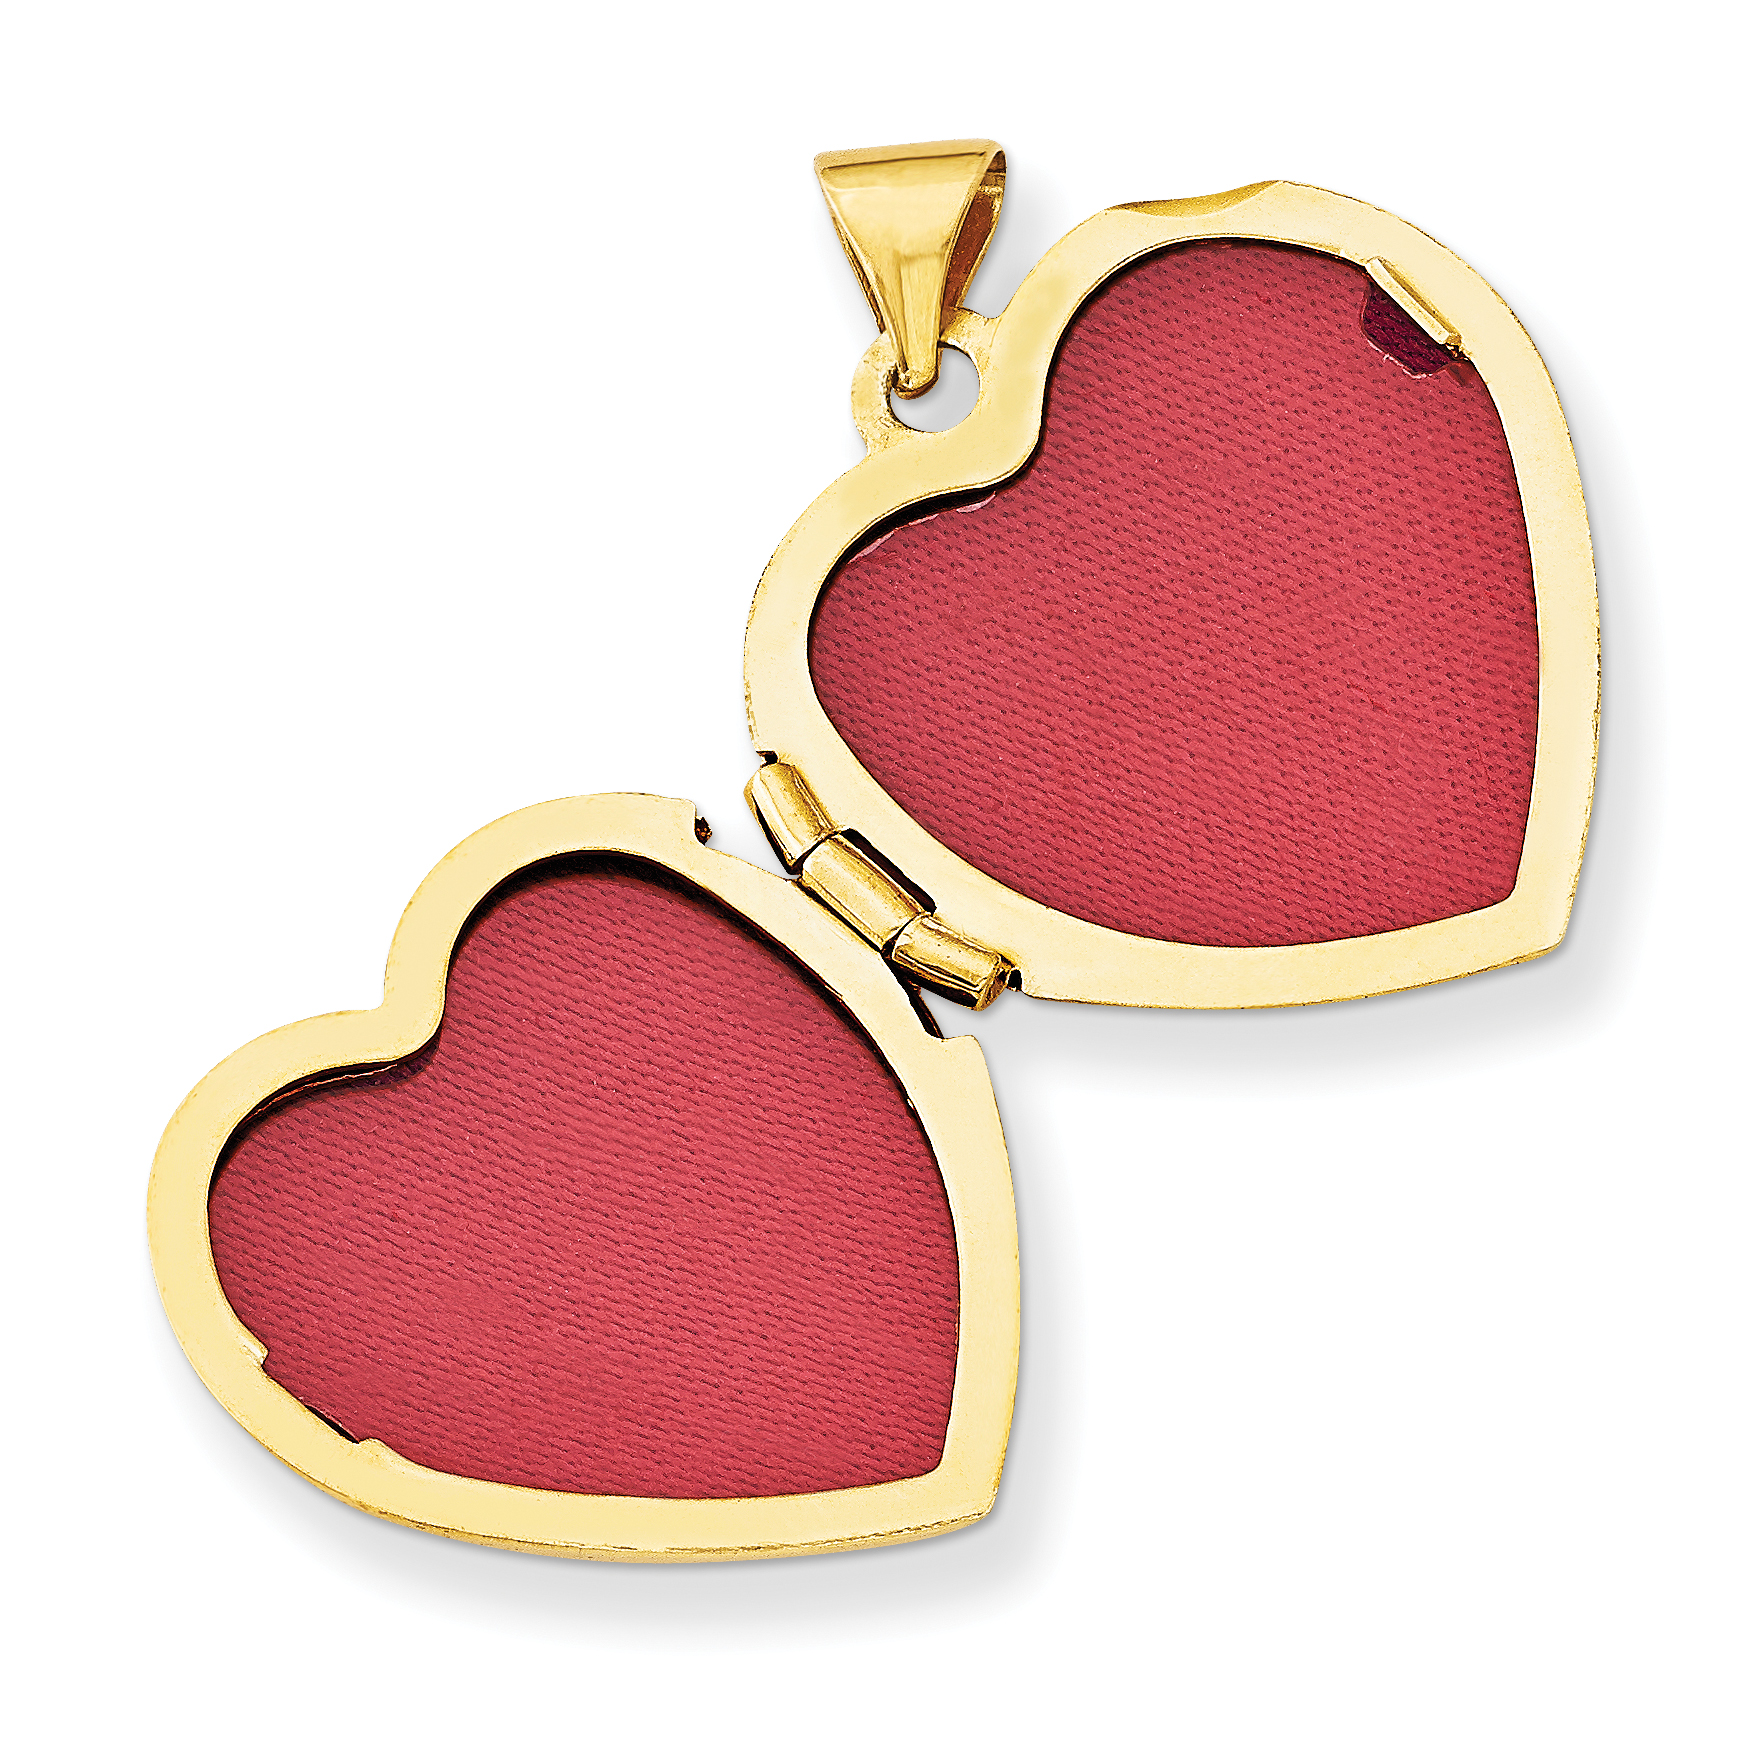 14K Yellow Gold Double Heart Locket - image 1 of 3